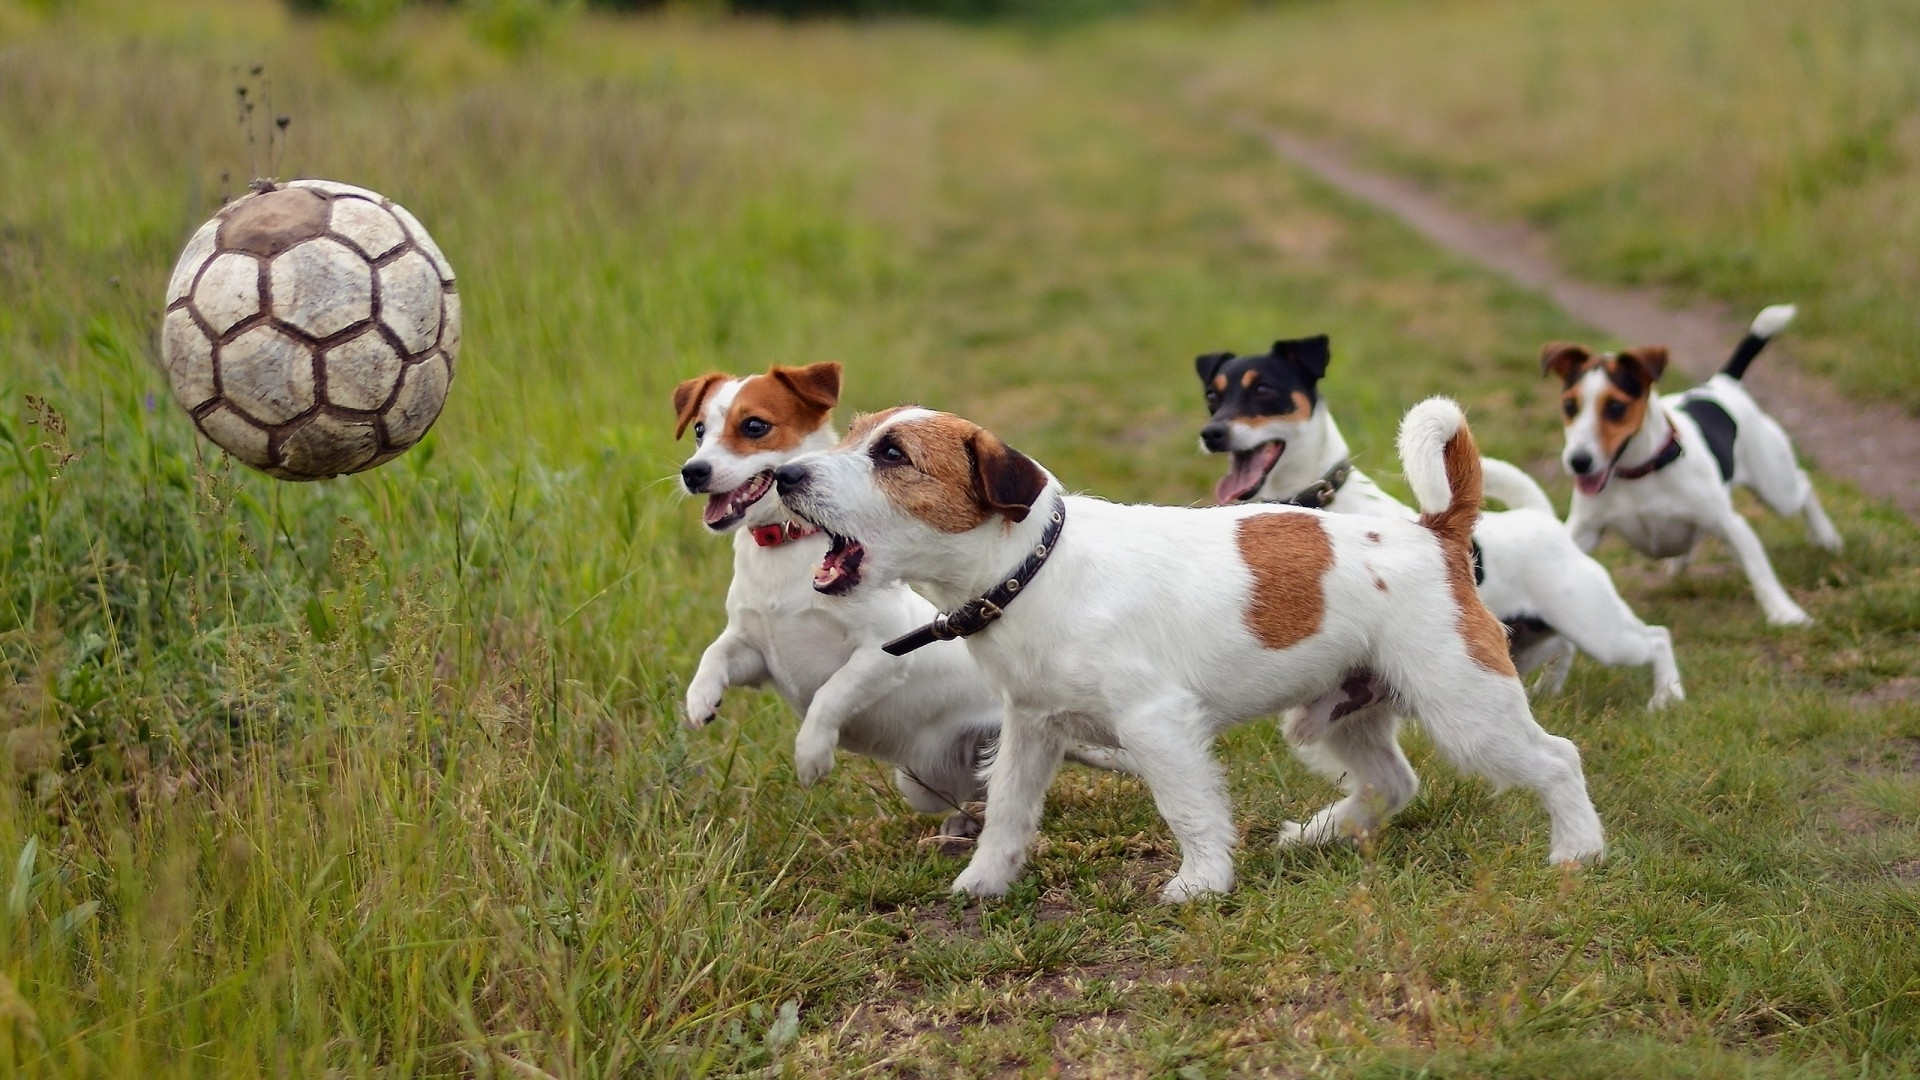 wallpaper : animals, soccer ball, jack russell terrier, harrier